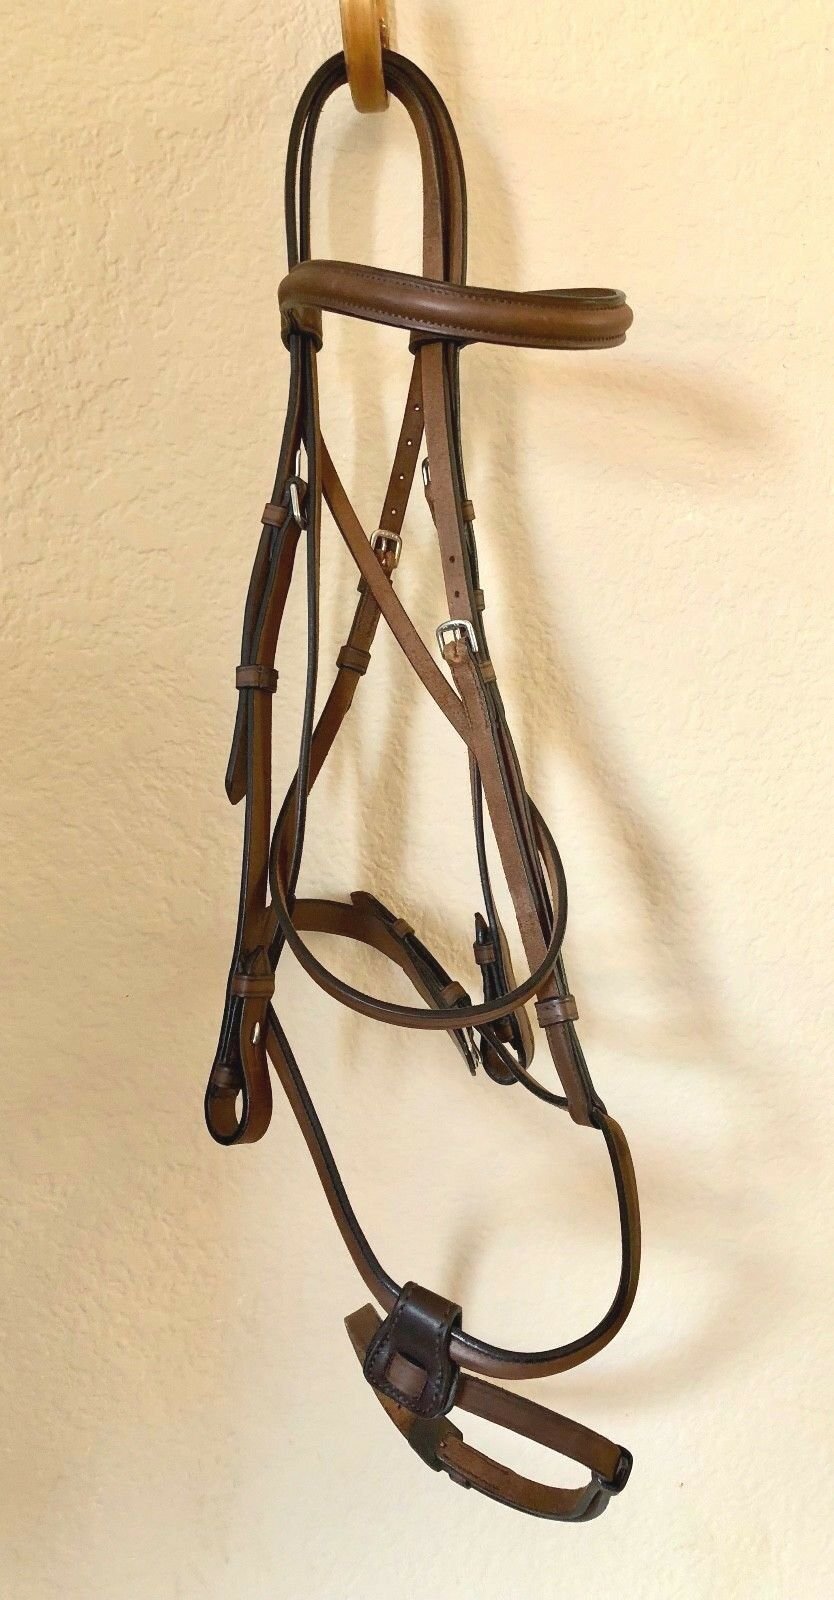 Guibert of Paris Raised Plain Bridle wdetachable Flash Full cavallo Diuominiione Marronee